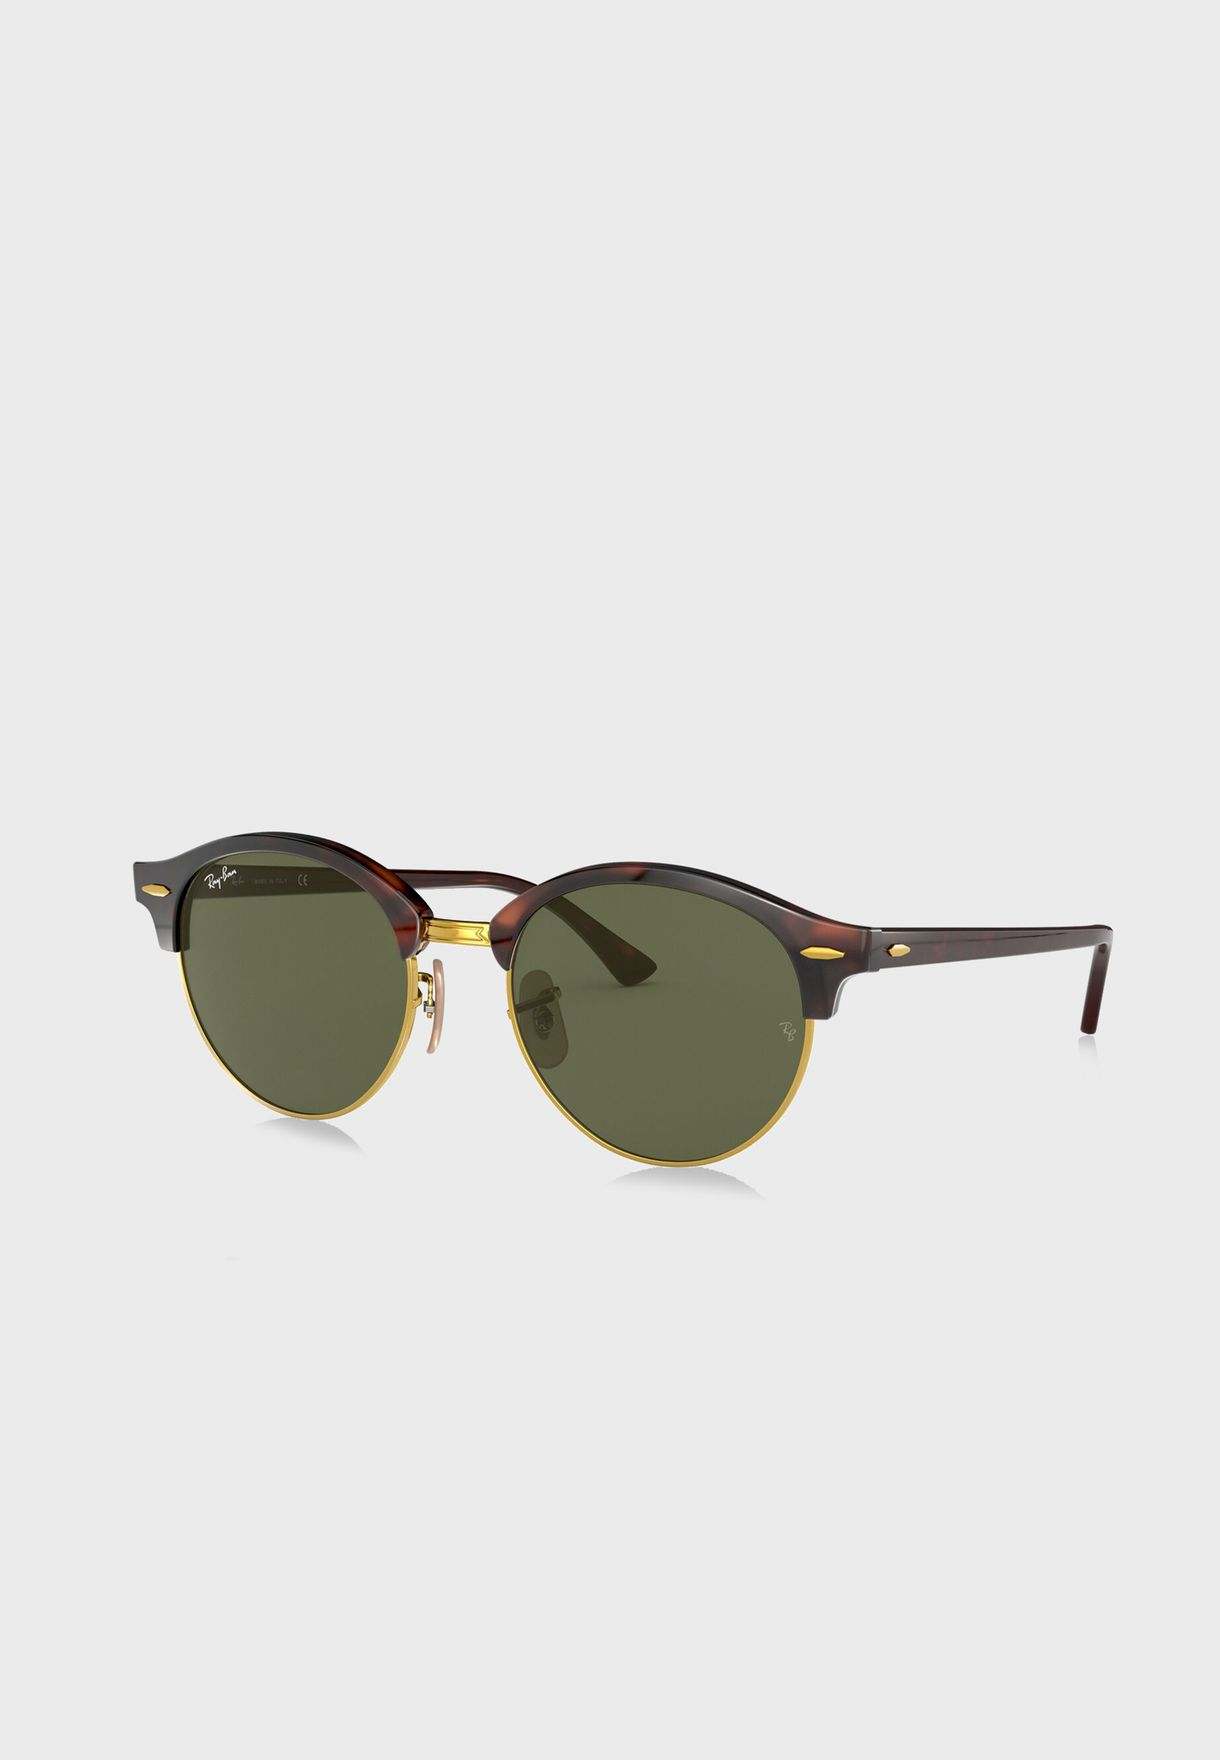 5f86d964ae7 Shop Ray-Ban red 0RB4246 Icons Clubmasters 8053672559699 for ...